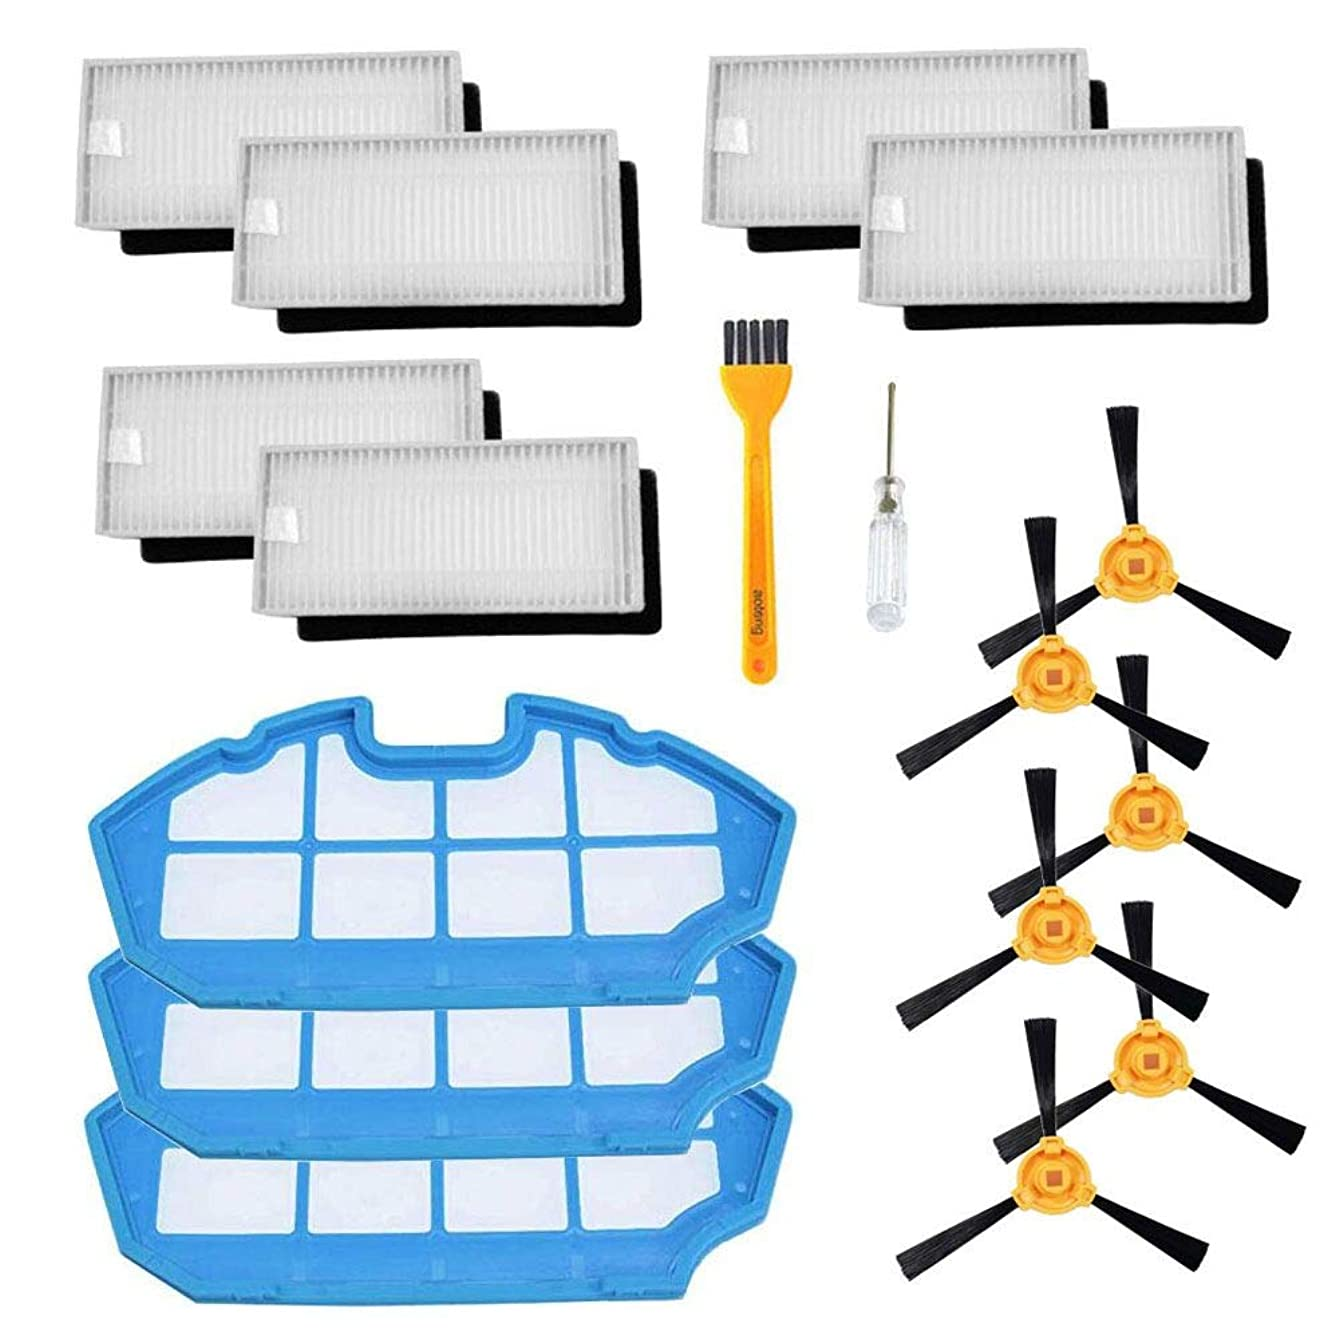 Replacement for Ecovacs Deebot N79 N79S Robot Vacuum Cleaner Accessory Kit (set 1)